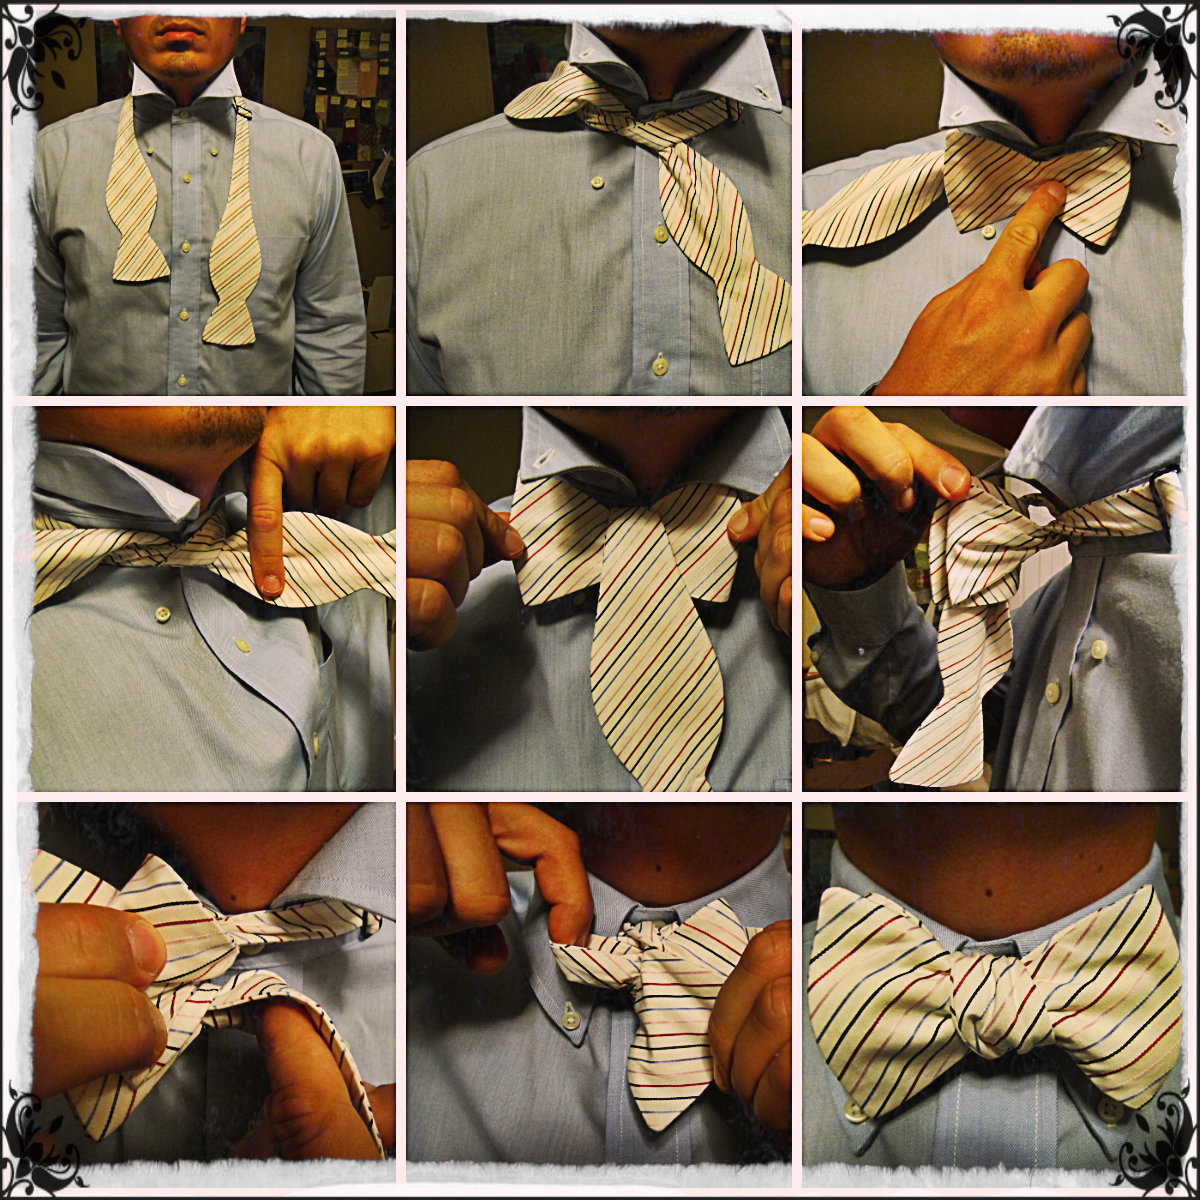 Guide to Tying a Bow Tie